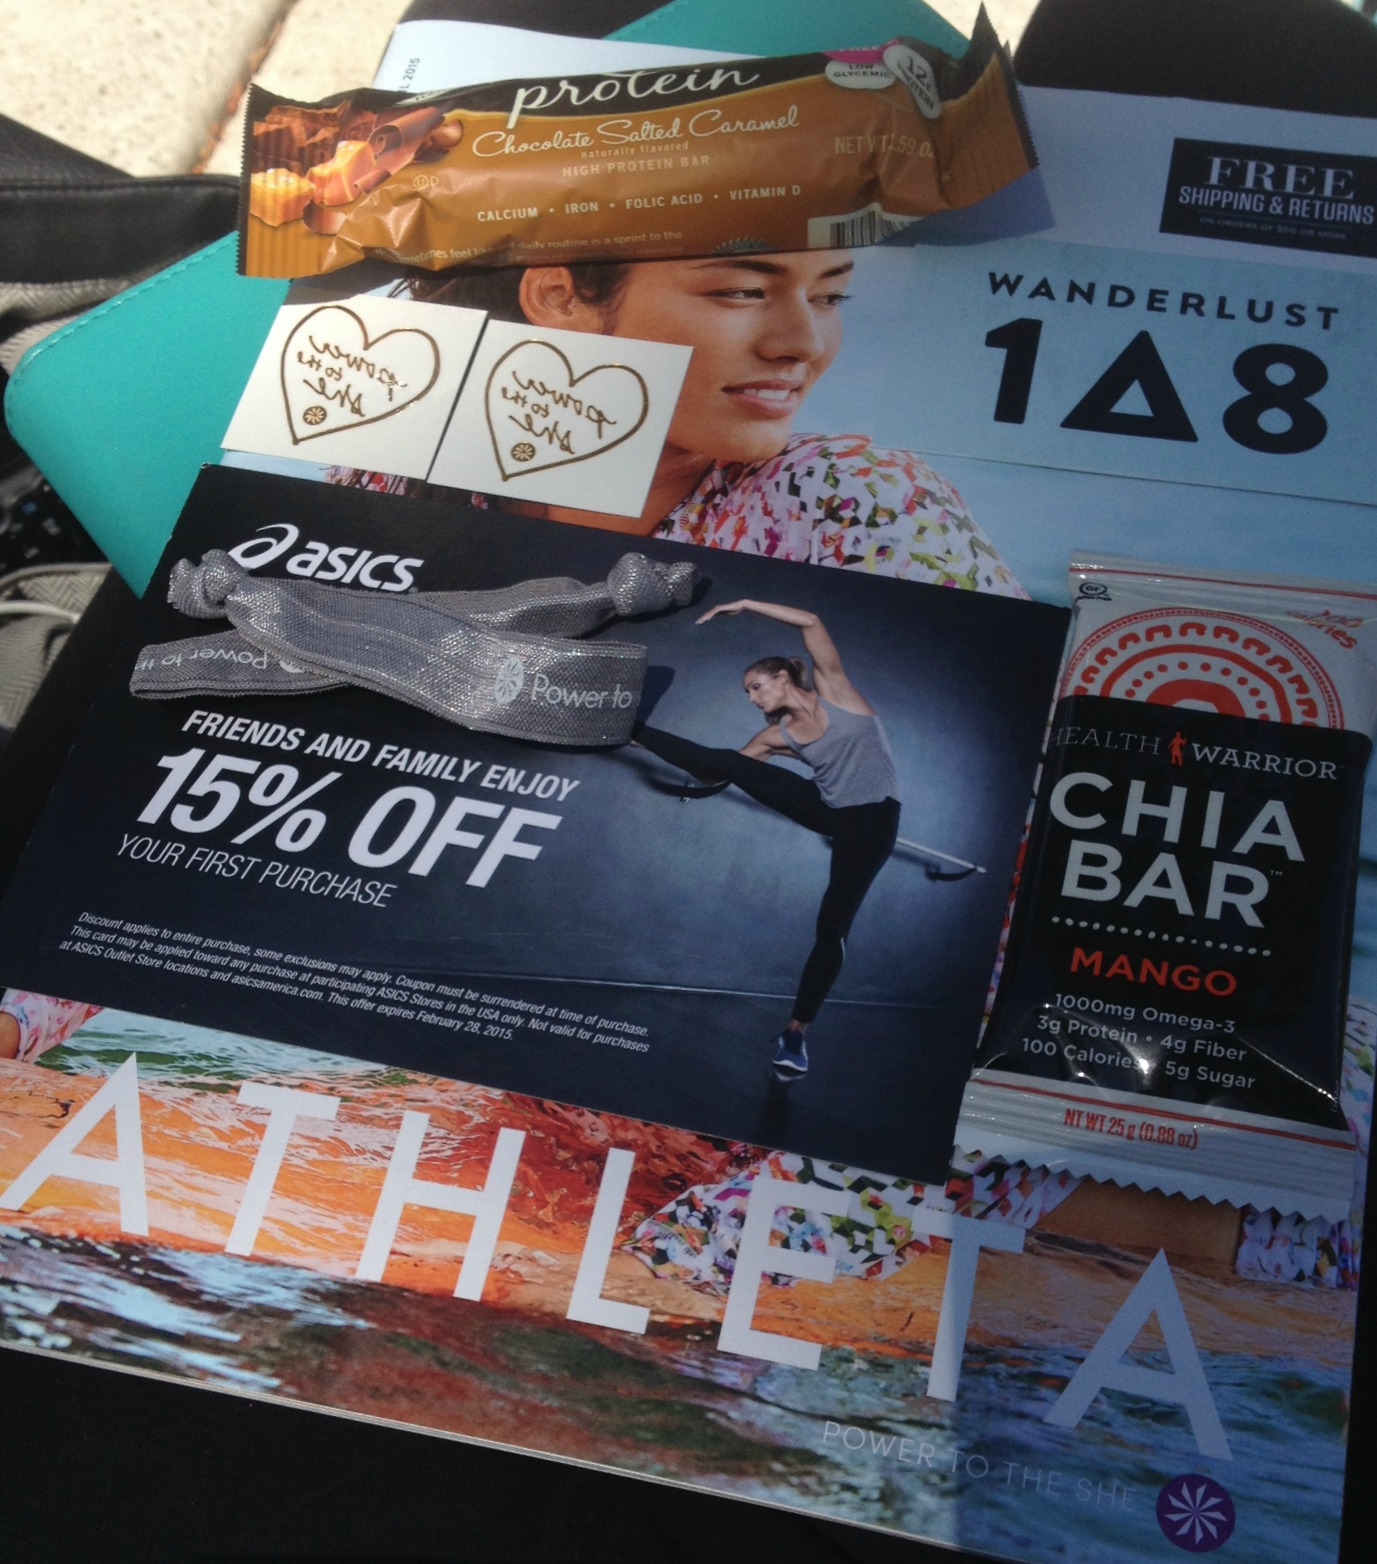 Athleta Goodie bag